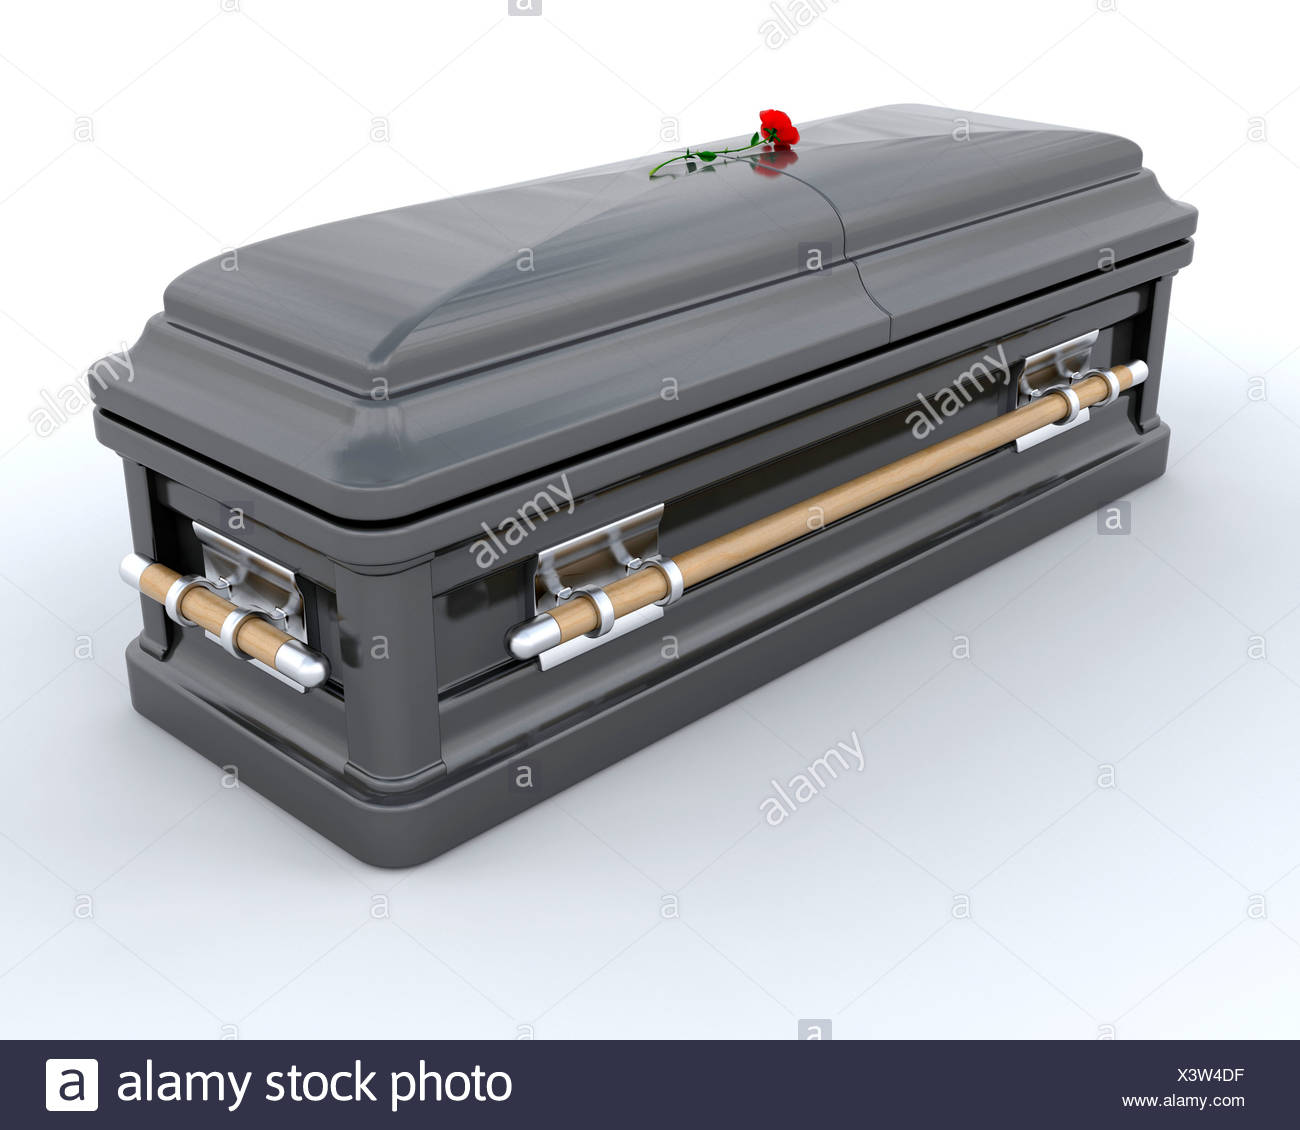 3D render of an ornate coffin - Stock Image